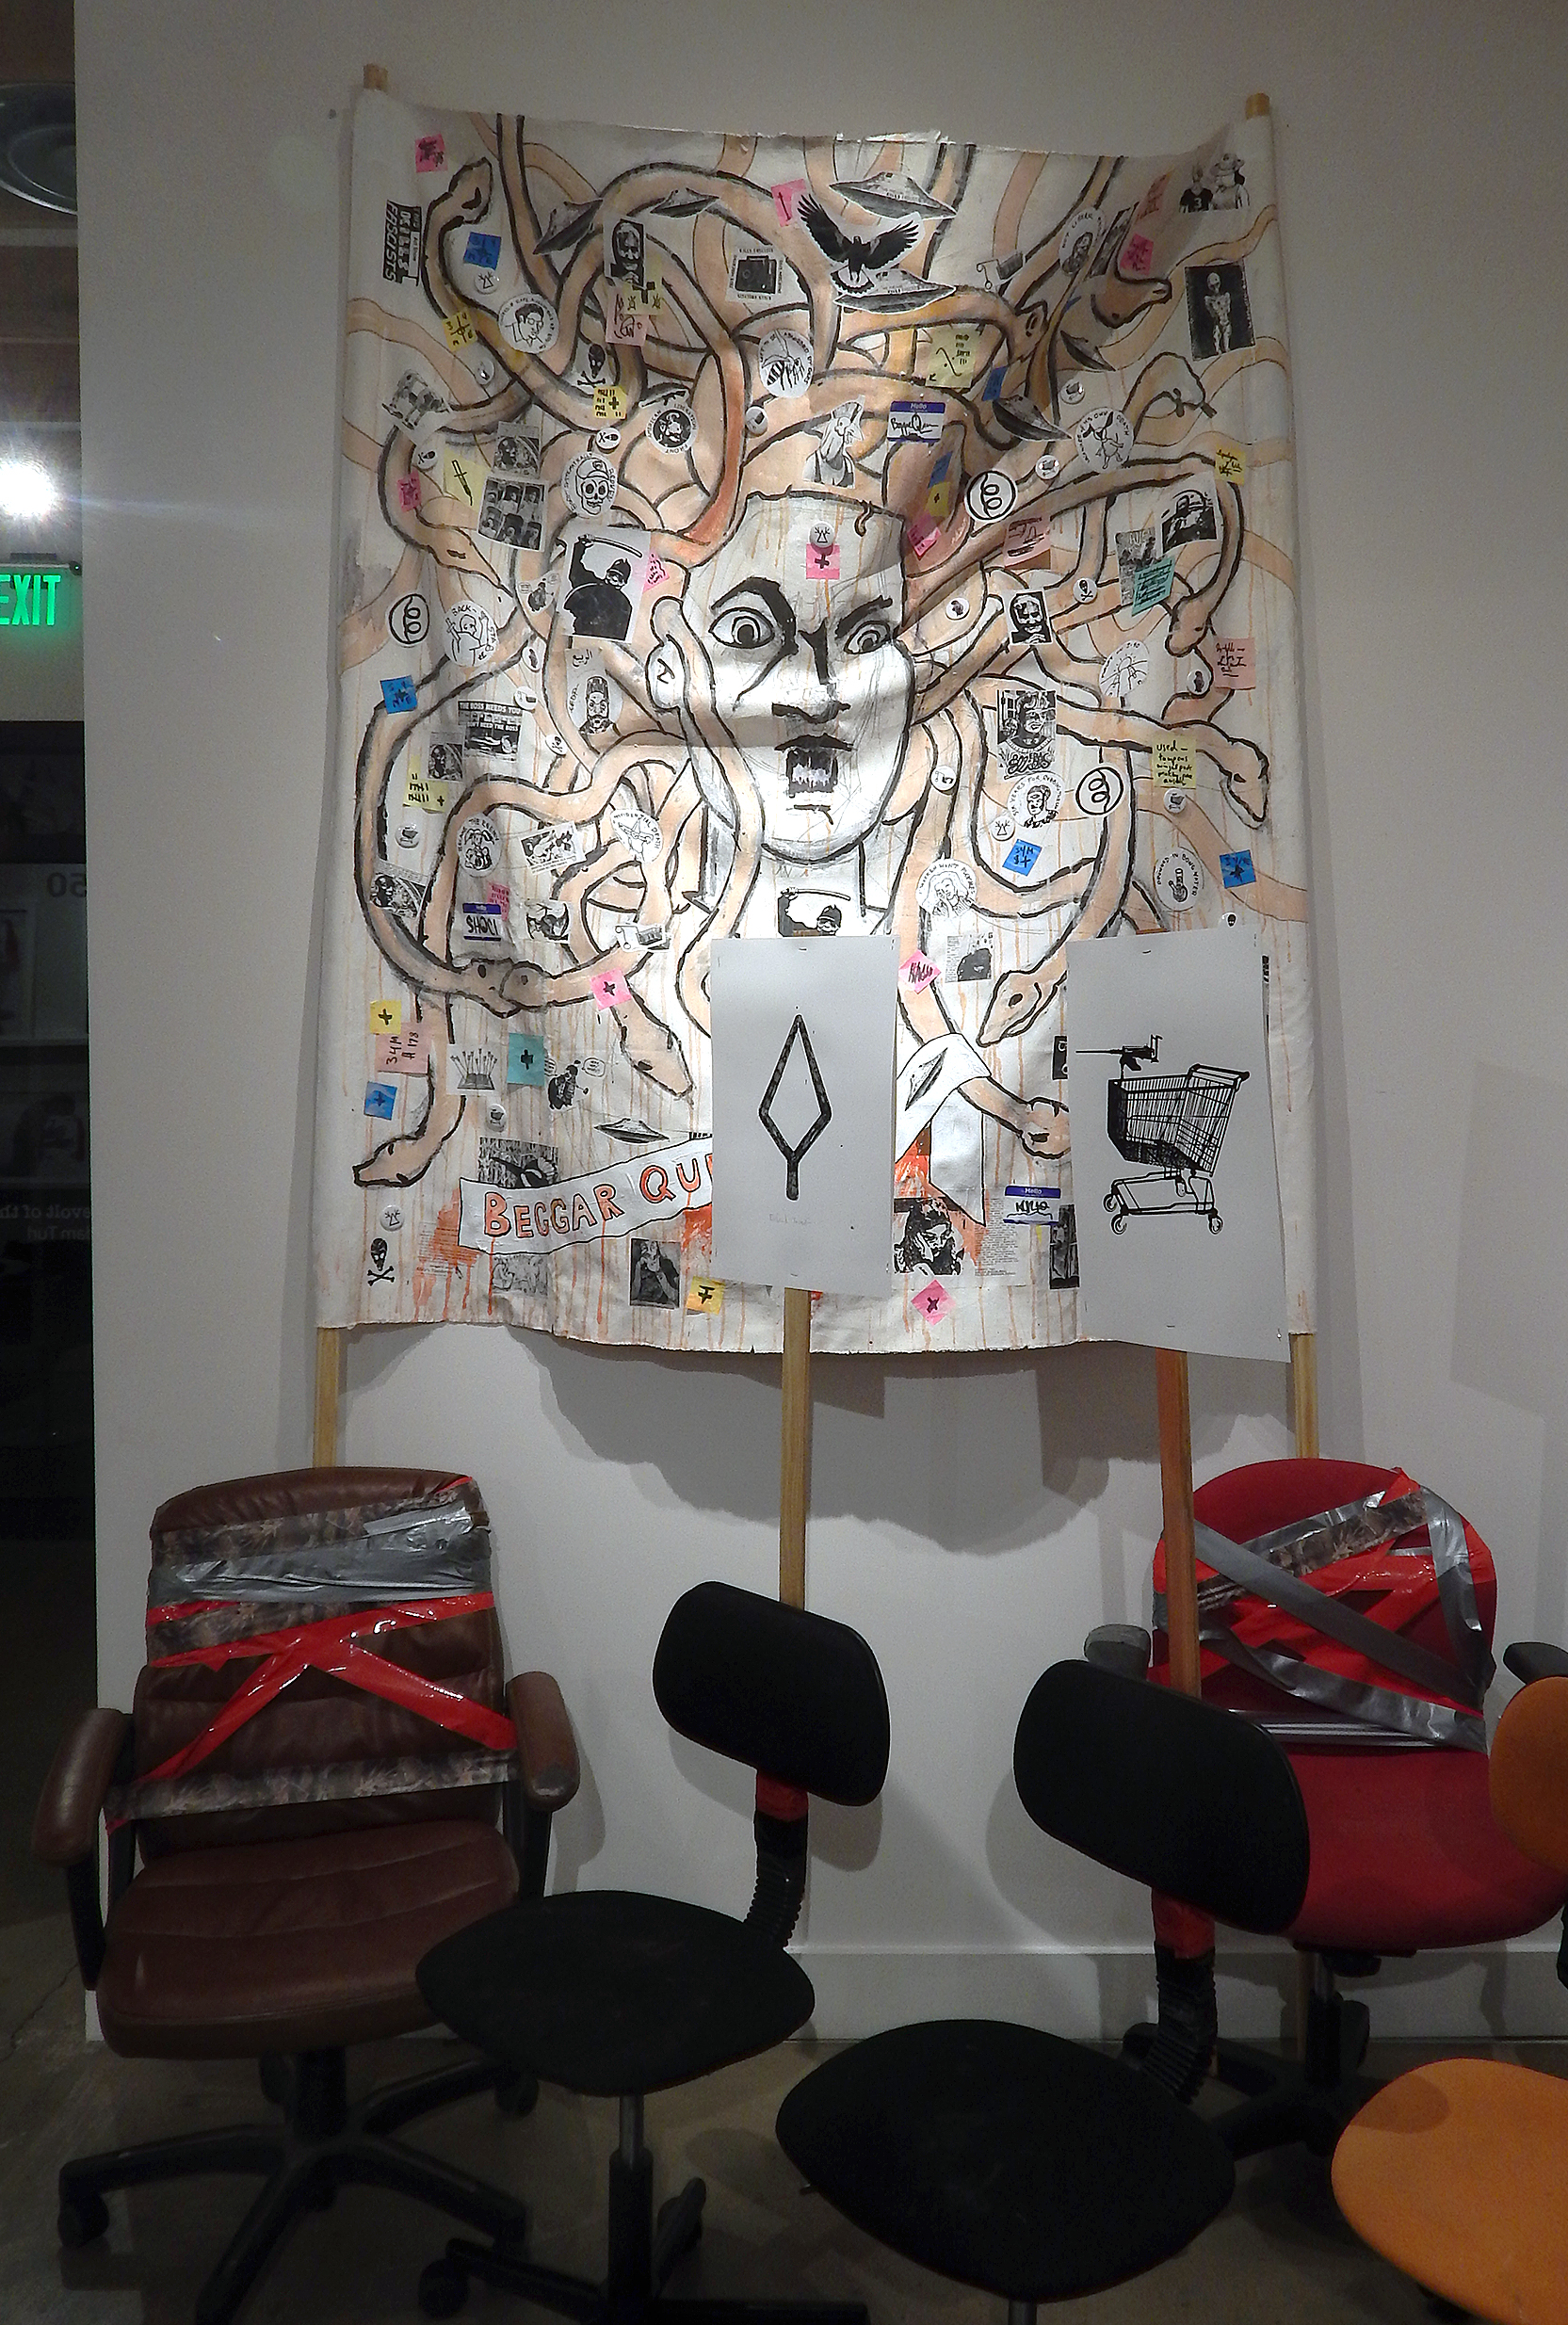 Beggar Queen.  Acrylic, stickers, marker, photocopies, buttons, post-it notes, coffee and mixed media on canvas banner with poles (installation view). (2017-2018) (Adam Turl)